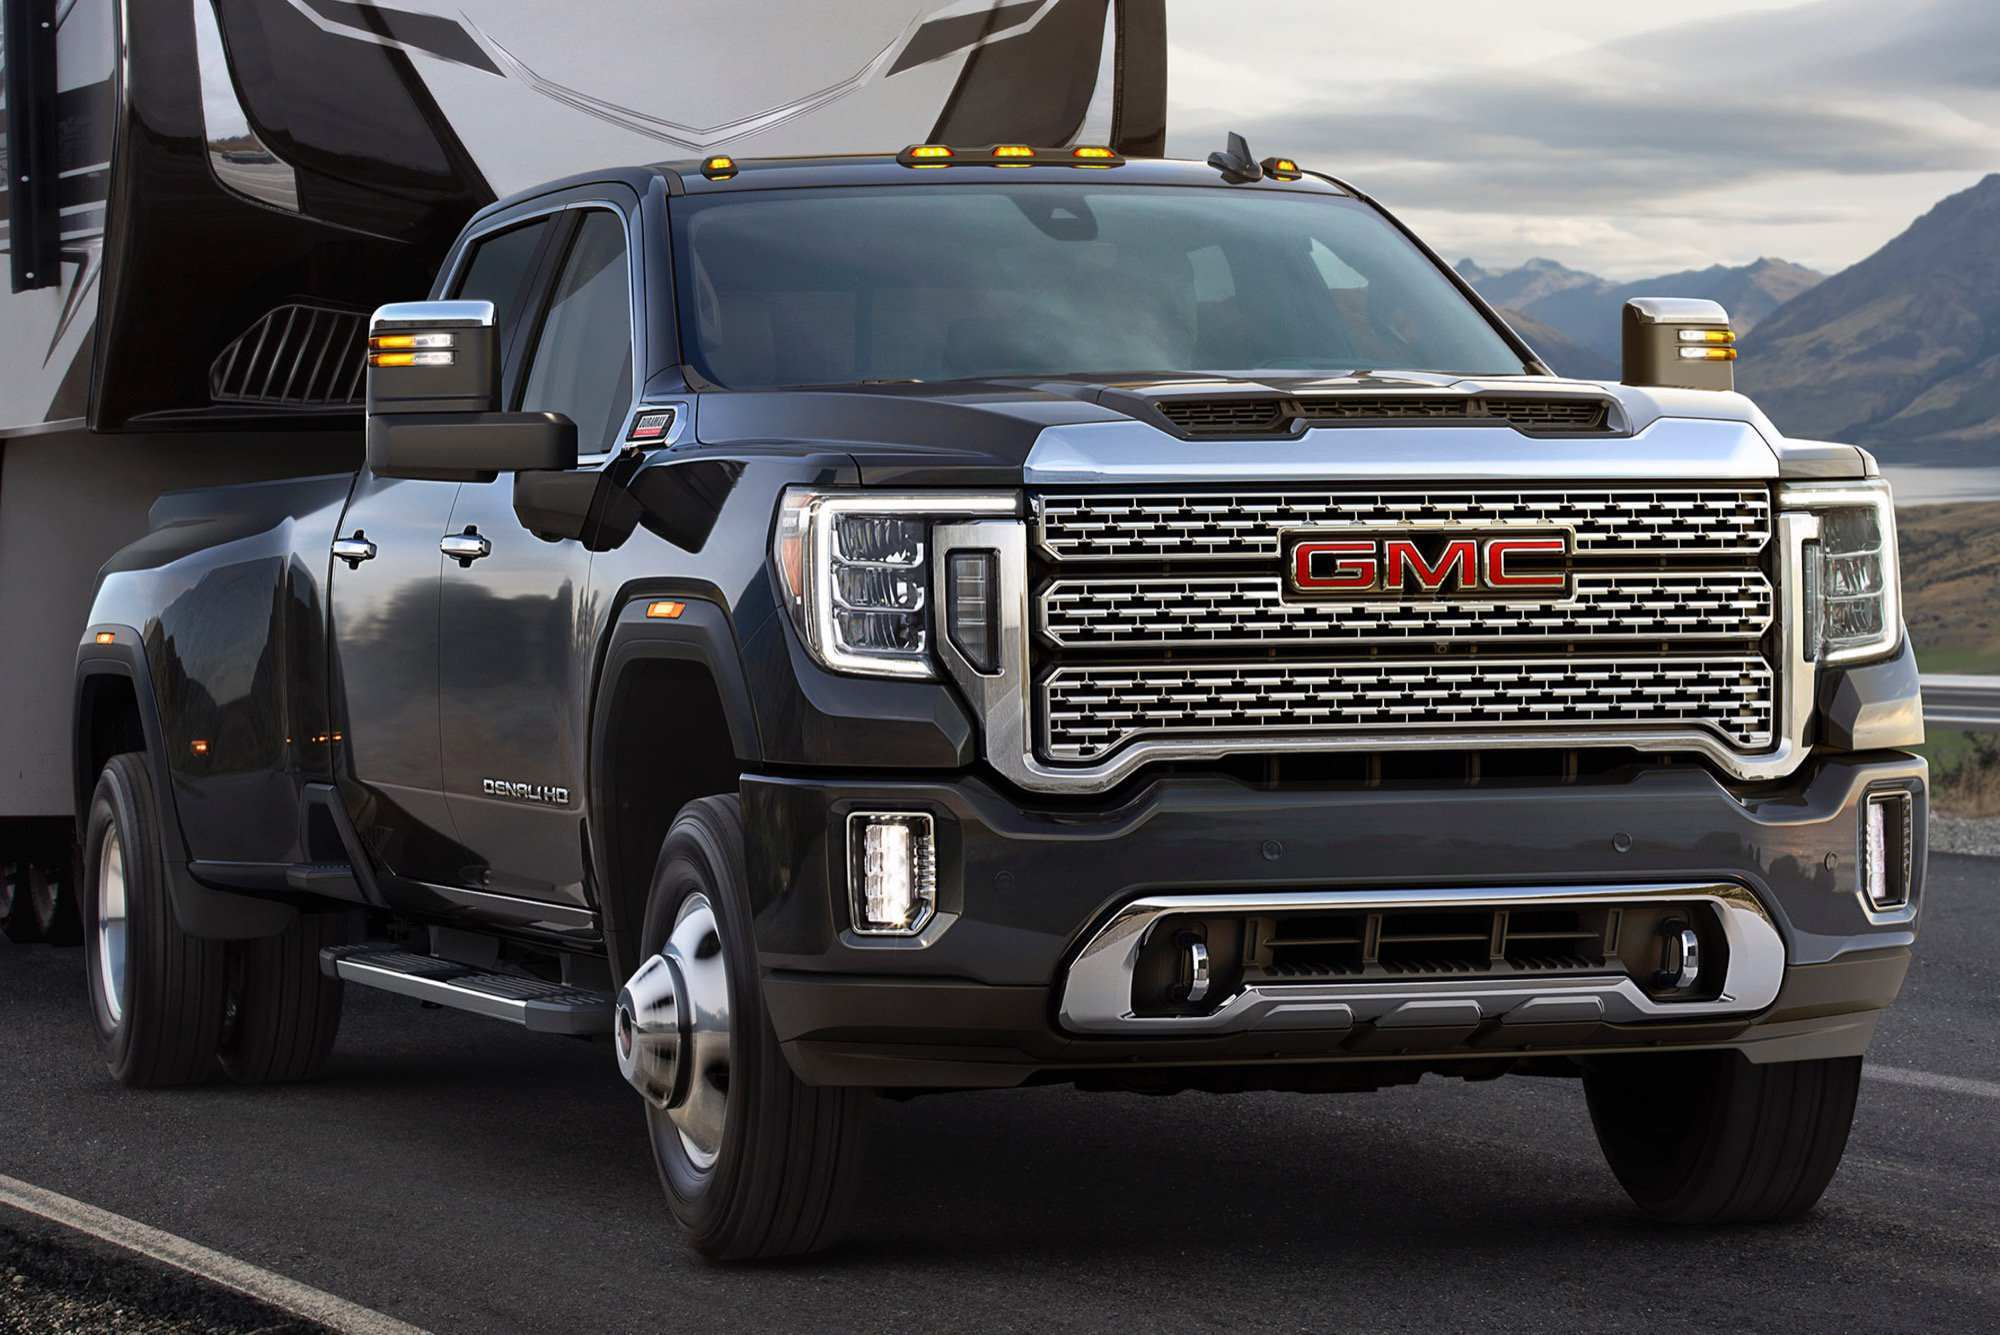 92 Best Review 2020 Gmc Sierra Denali Overview with 2020 Gmc Sierra Denali